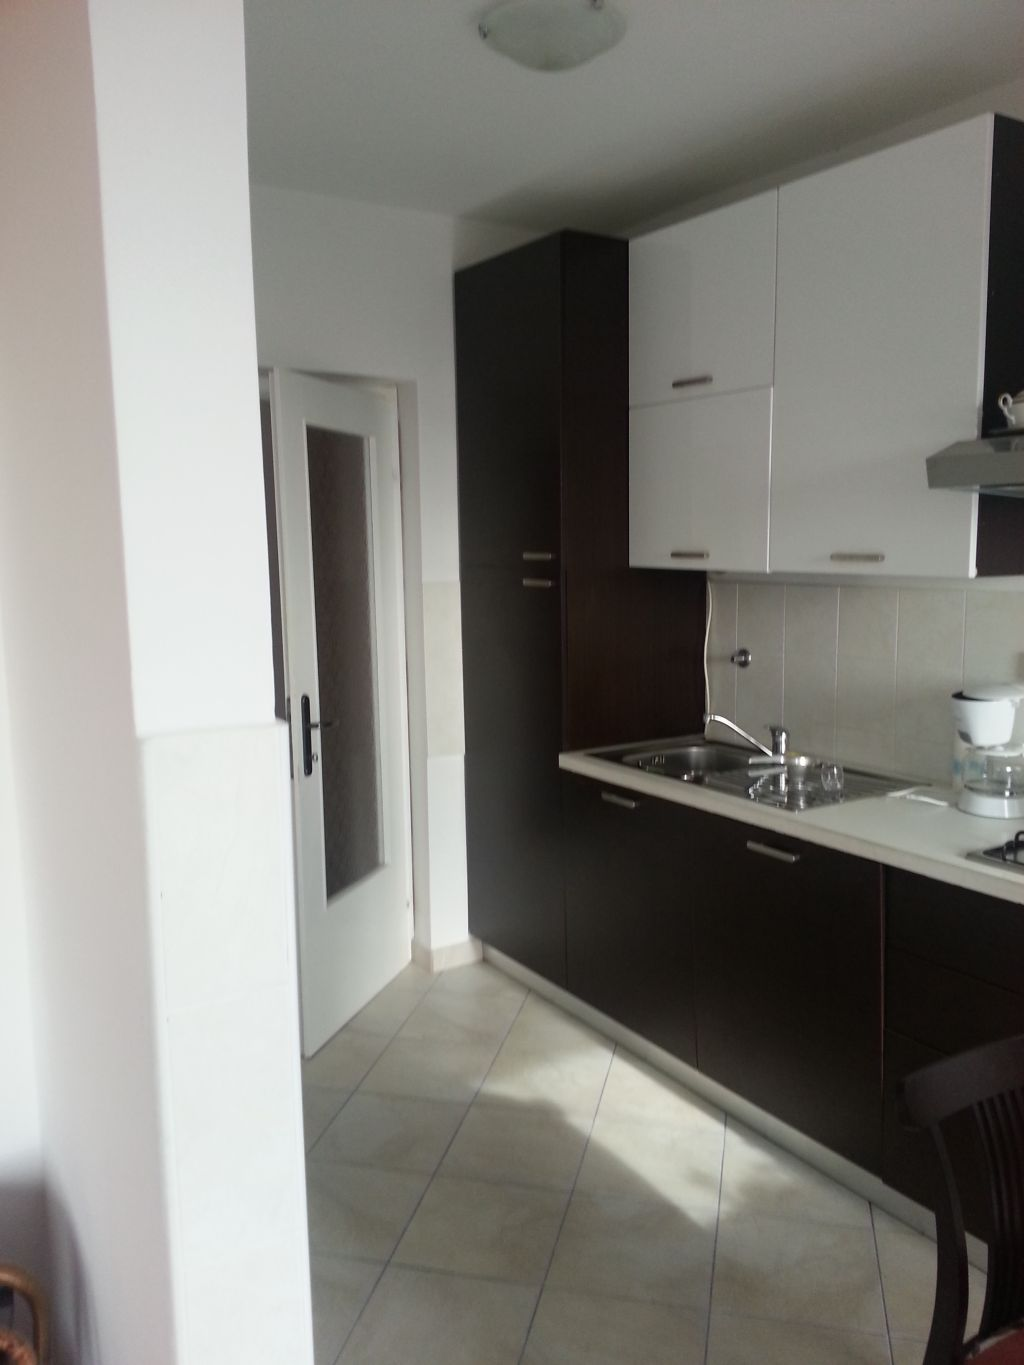 Stan/apartment, Lovran-centre, 50m2, € 123.000